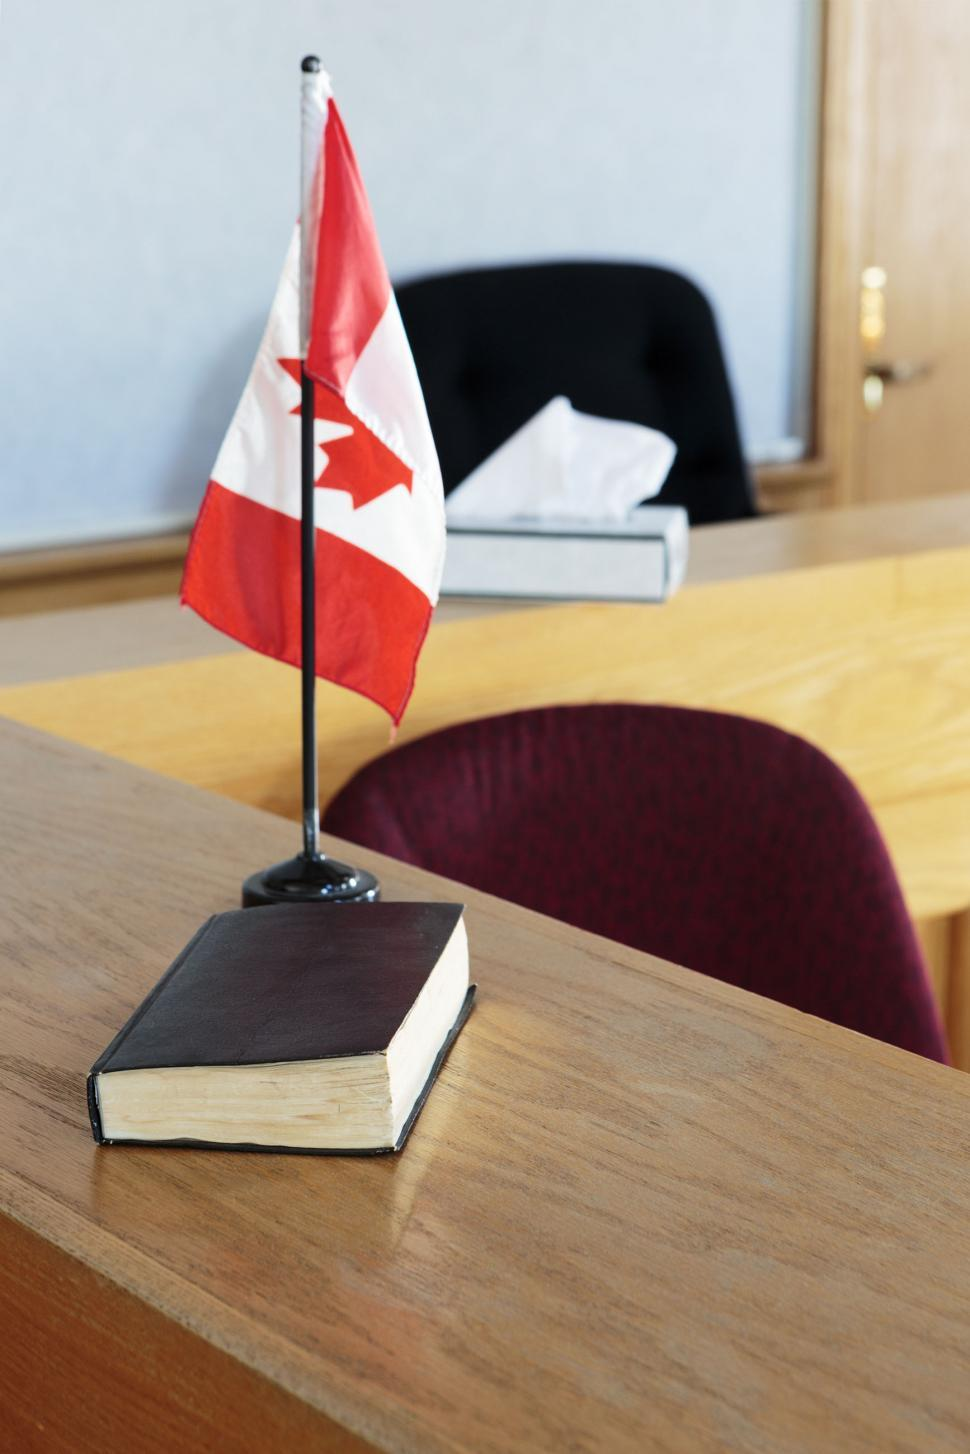 Download Free Stock Photo of Court book and flag